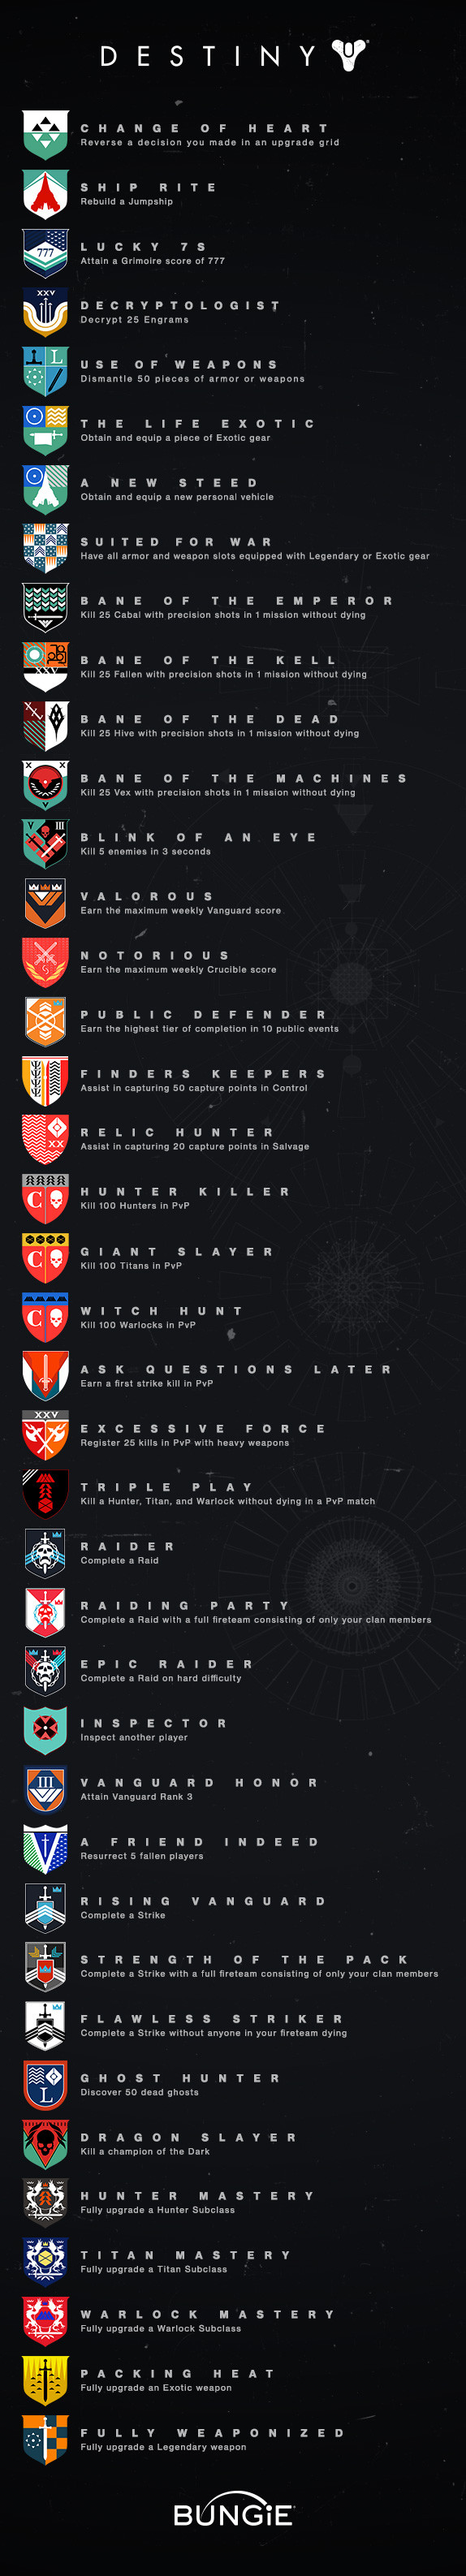 Destiny'nin Trophy & Achievement Listesi